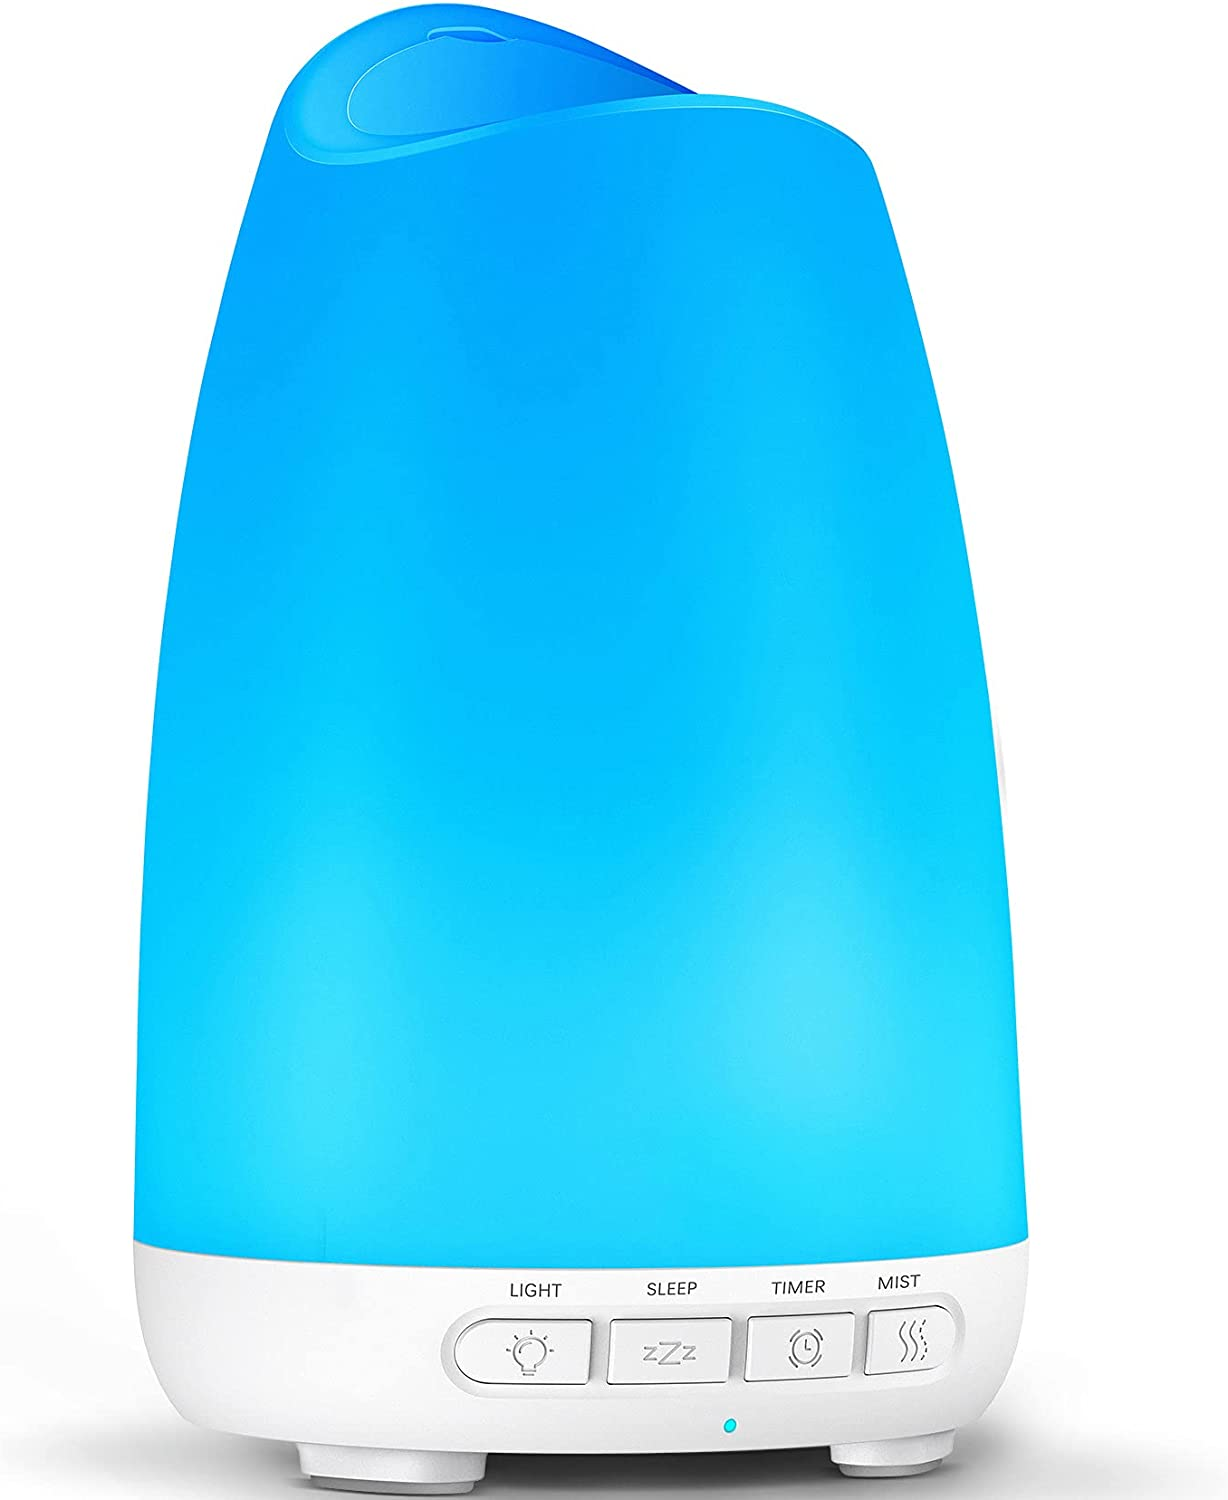 Essential Oil Diffuser, 150mL Aromatherapy Diffusers for Essential Oils with 8 Color Lights, Aroma Air Diffuser Cool Mist Humidifier with Sleep Mode and Timer, Waterless Auto Shut-Off for Home Office